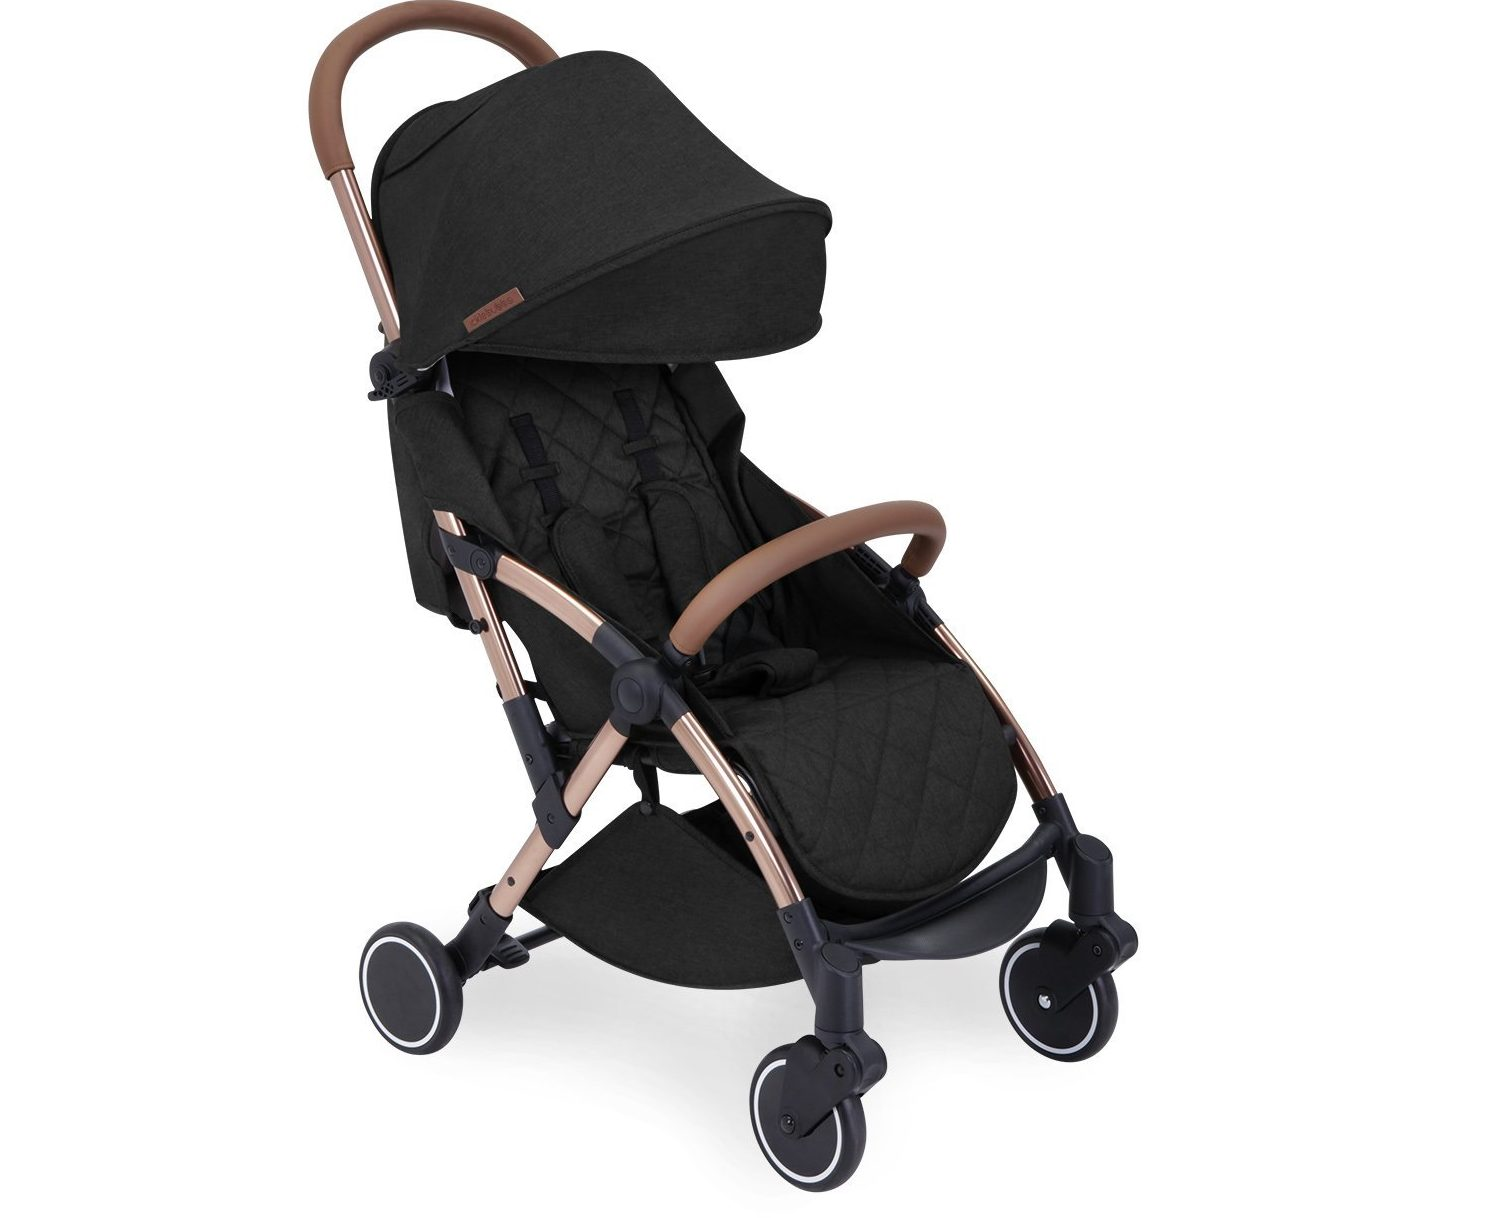 Newborn Umbrella Stroller Best Umbrella Strollers 2019 The Sun Uk